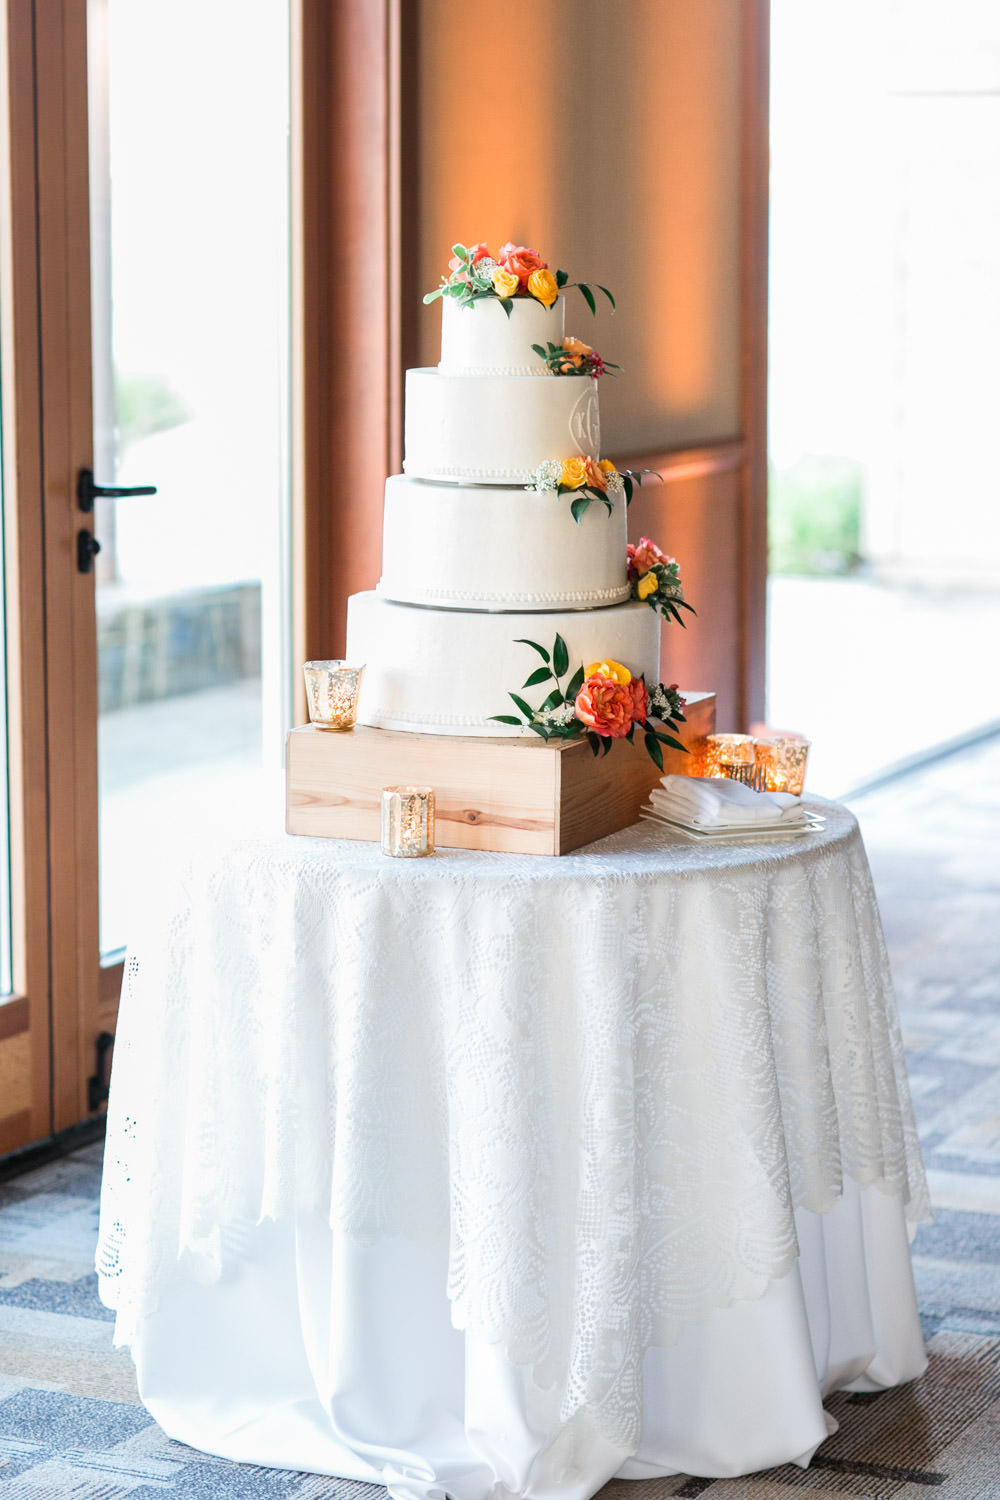 Four tier wedding cake with red and yellow flowers, Coronado Community Center Wedding reception by Coastyle Events, sophisticated sports vintage themed decor with blue red yellow and peach and green, Cavin Elizabeth Photography